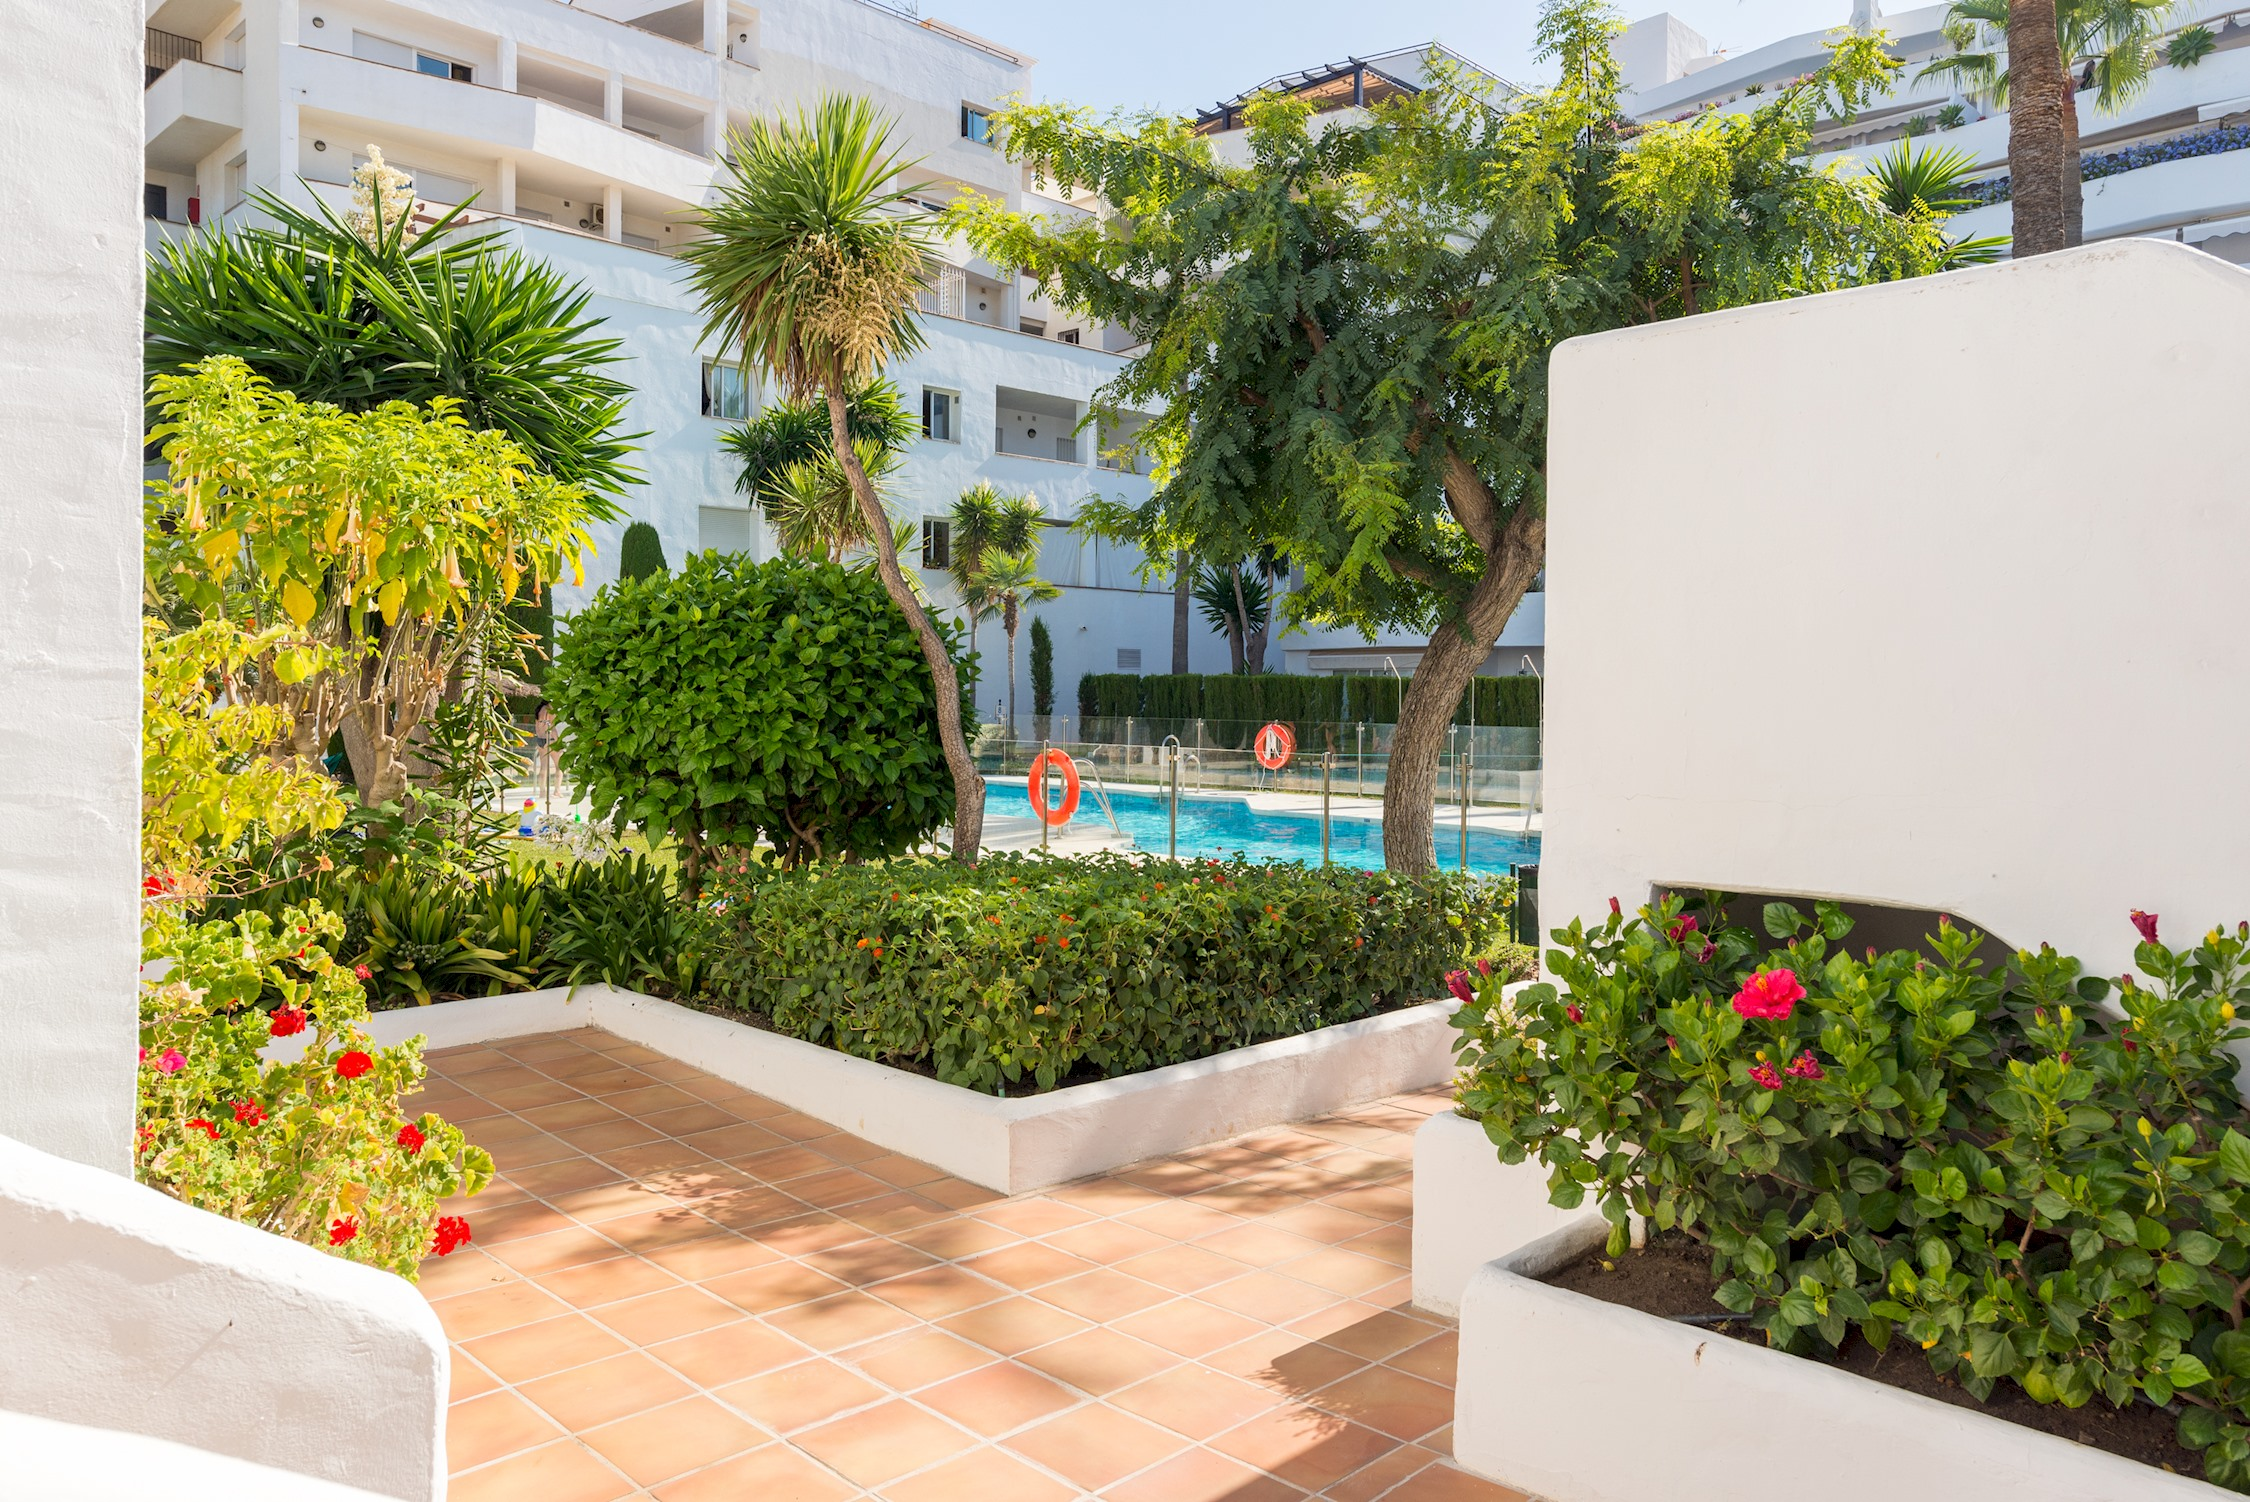 Apartment MalagaSuite Marbella Solarium   Pool photo 21307069